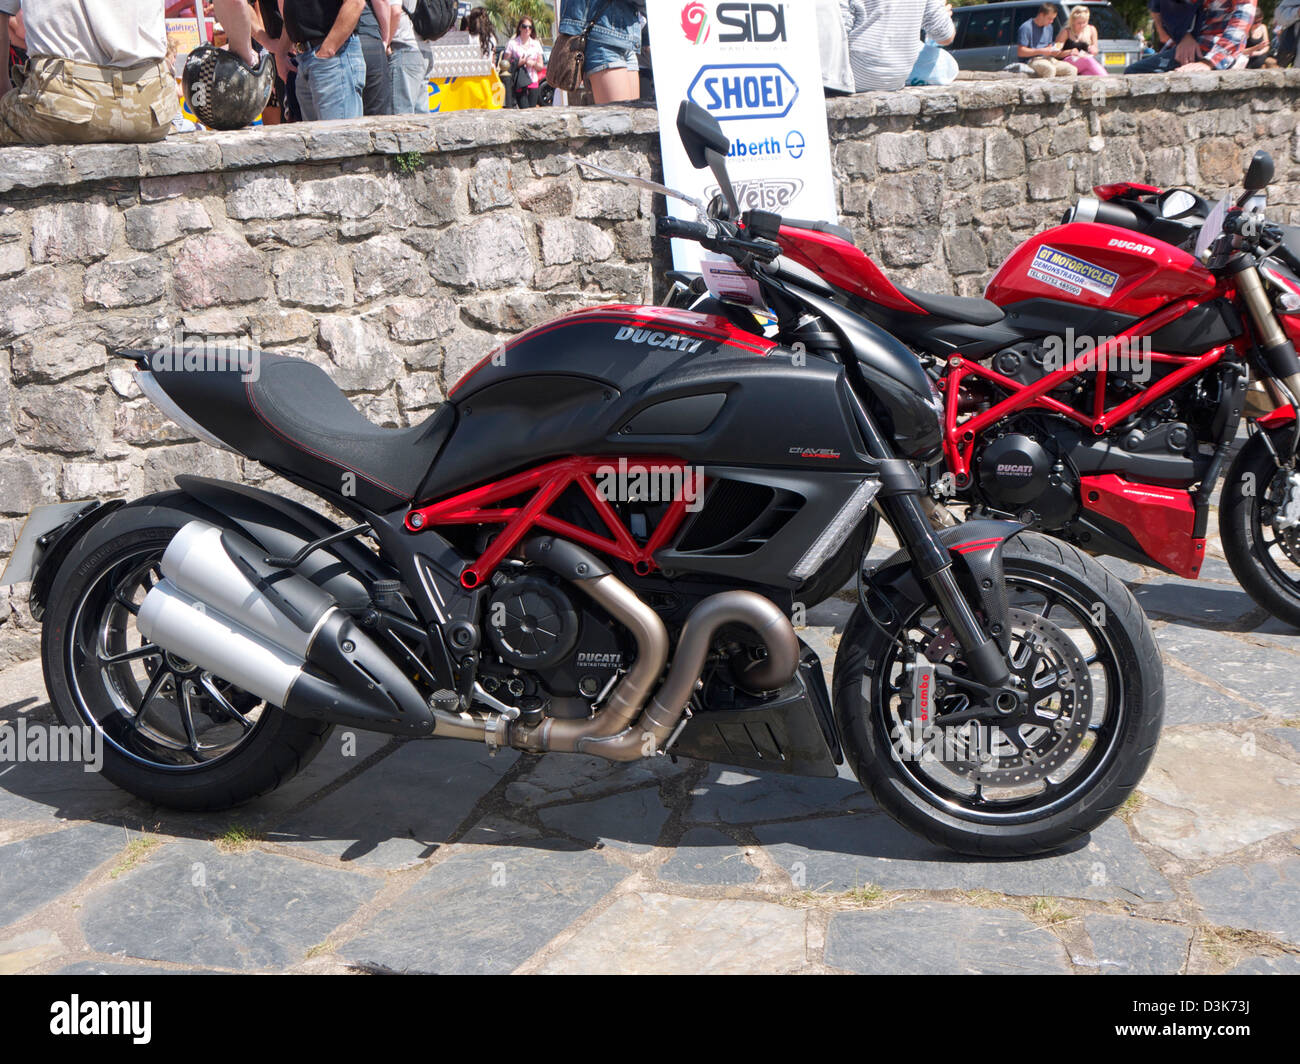 Ducati Motorcycles At Super Speed Weekend In Torquay   Stock Image